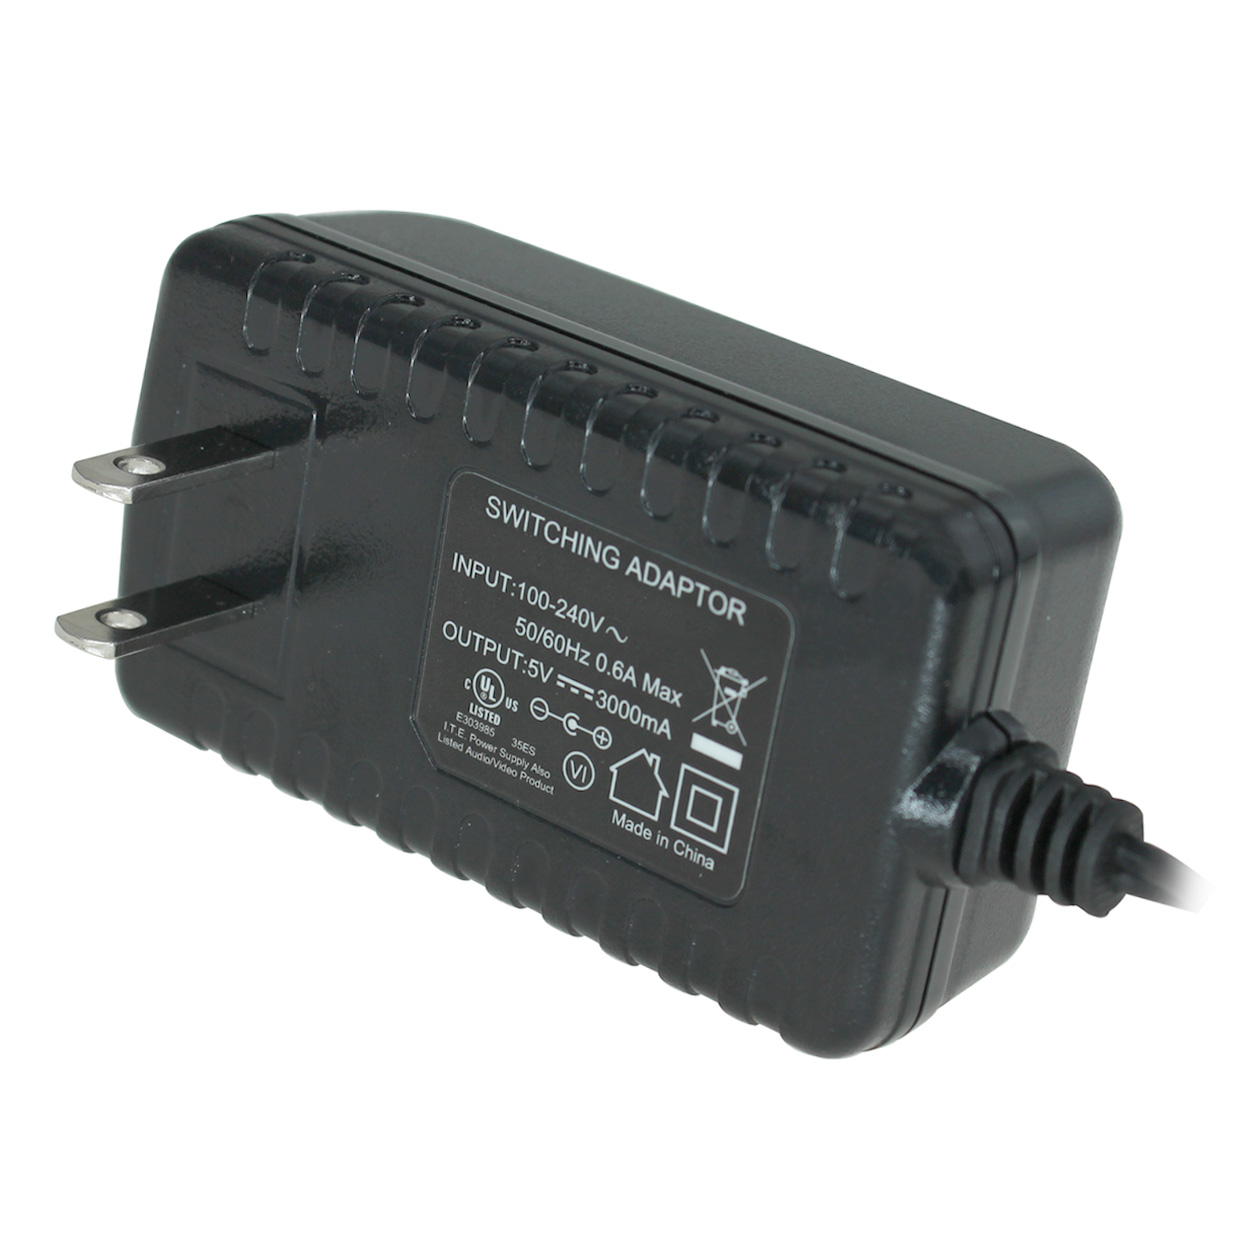 5v Dc Power Adapter 3a Output 100 240v Ac Input 21mm Id 55mm Regulated Supply